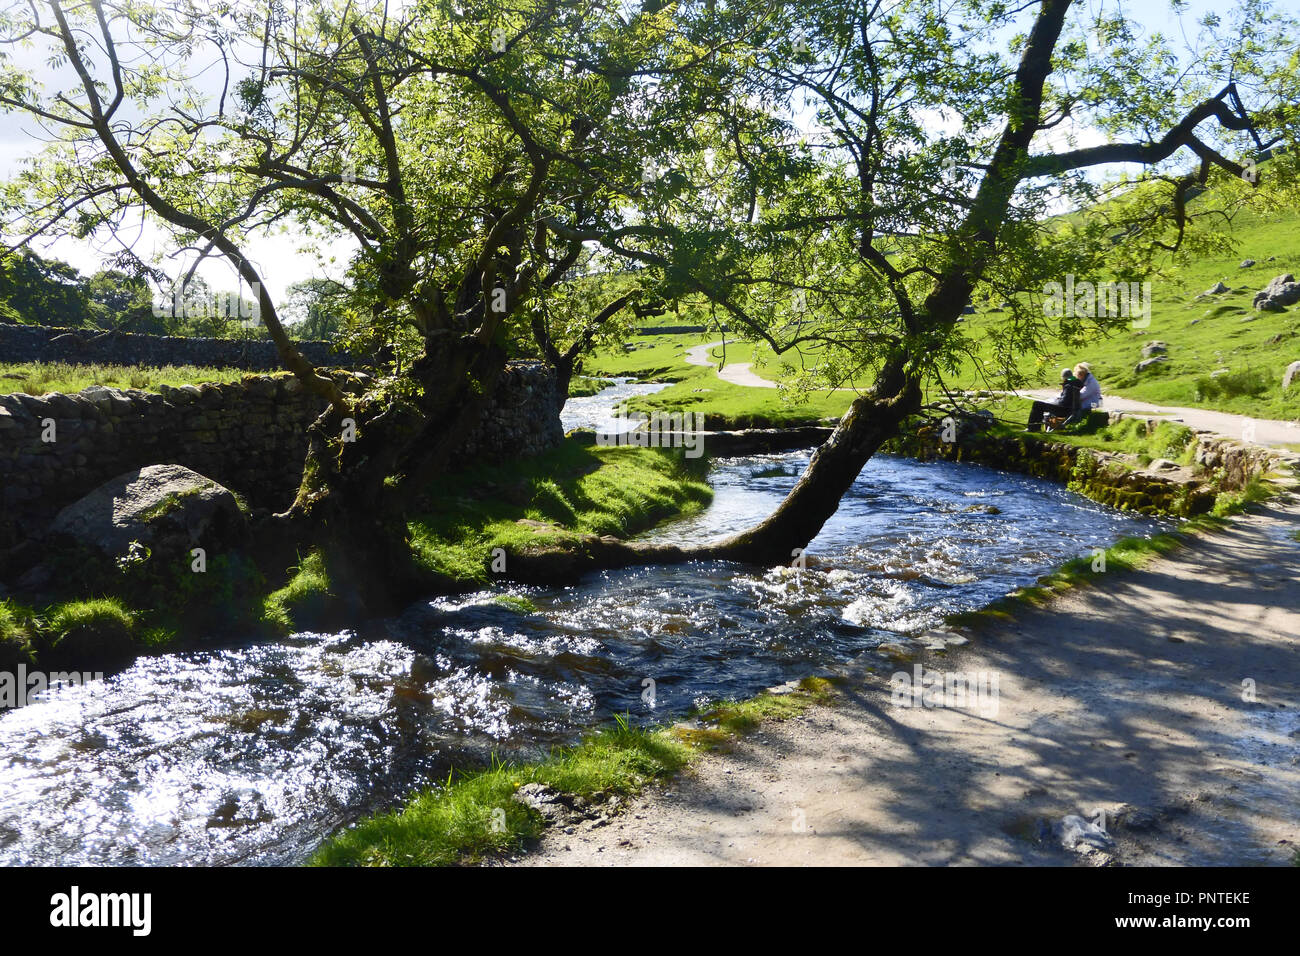 Malham Beck which flows from Malham Cove in the Yorkshire Dales, England - Stock Image